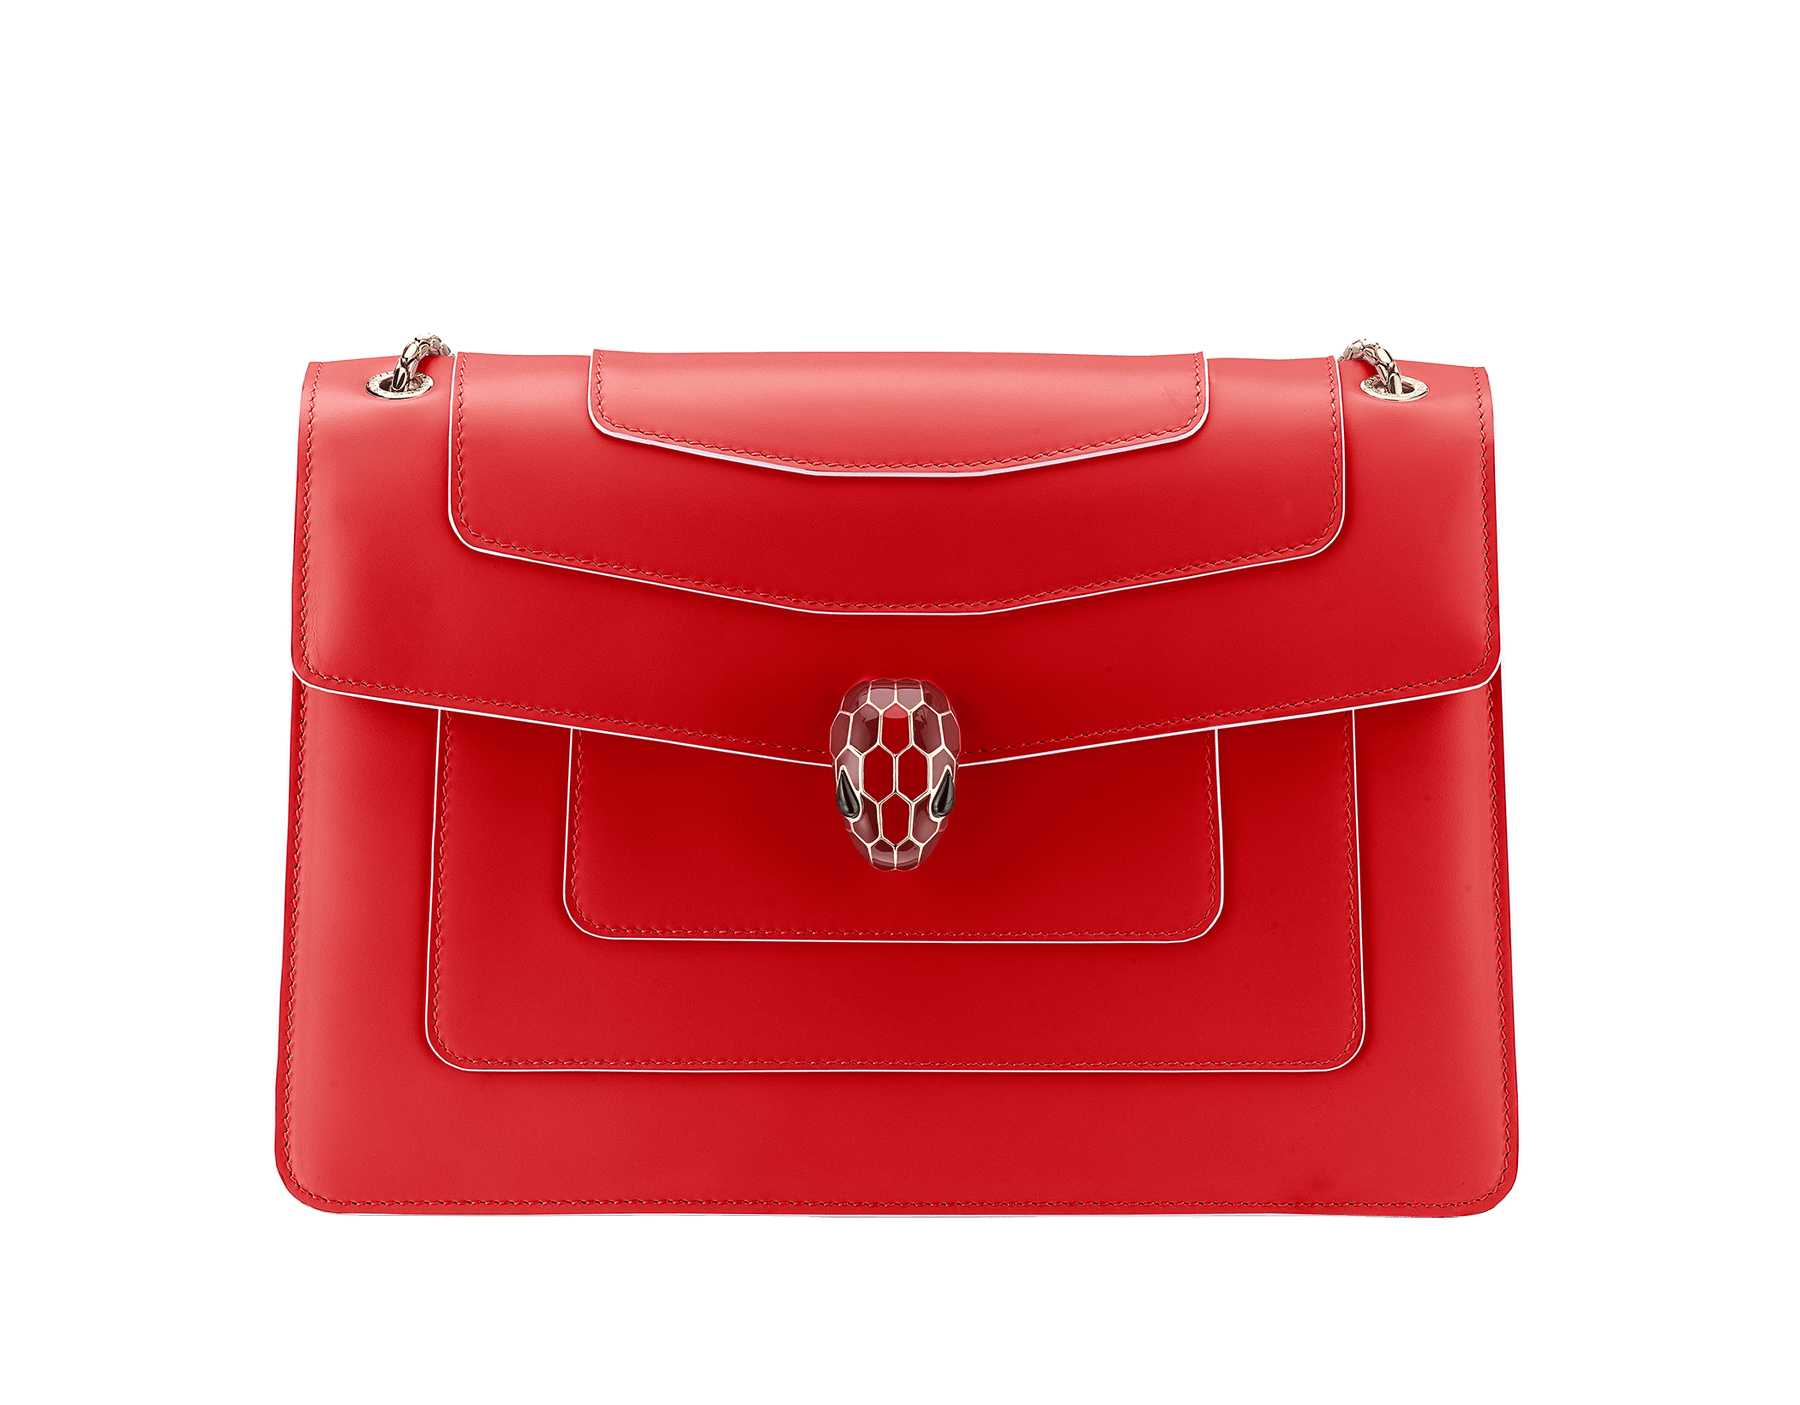 """Serpenti Forever"" shoulder bag in white agate calf leather body and ruby red calf leather sides. Iconic snakehead closure in light gold plated brass enriched with ruby red and white agate enamel and black onyx eyes. 521-BCL image 1"